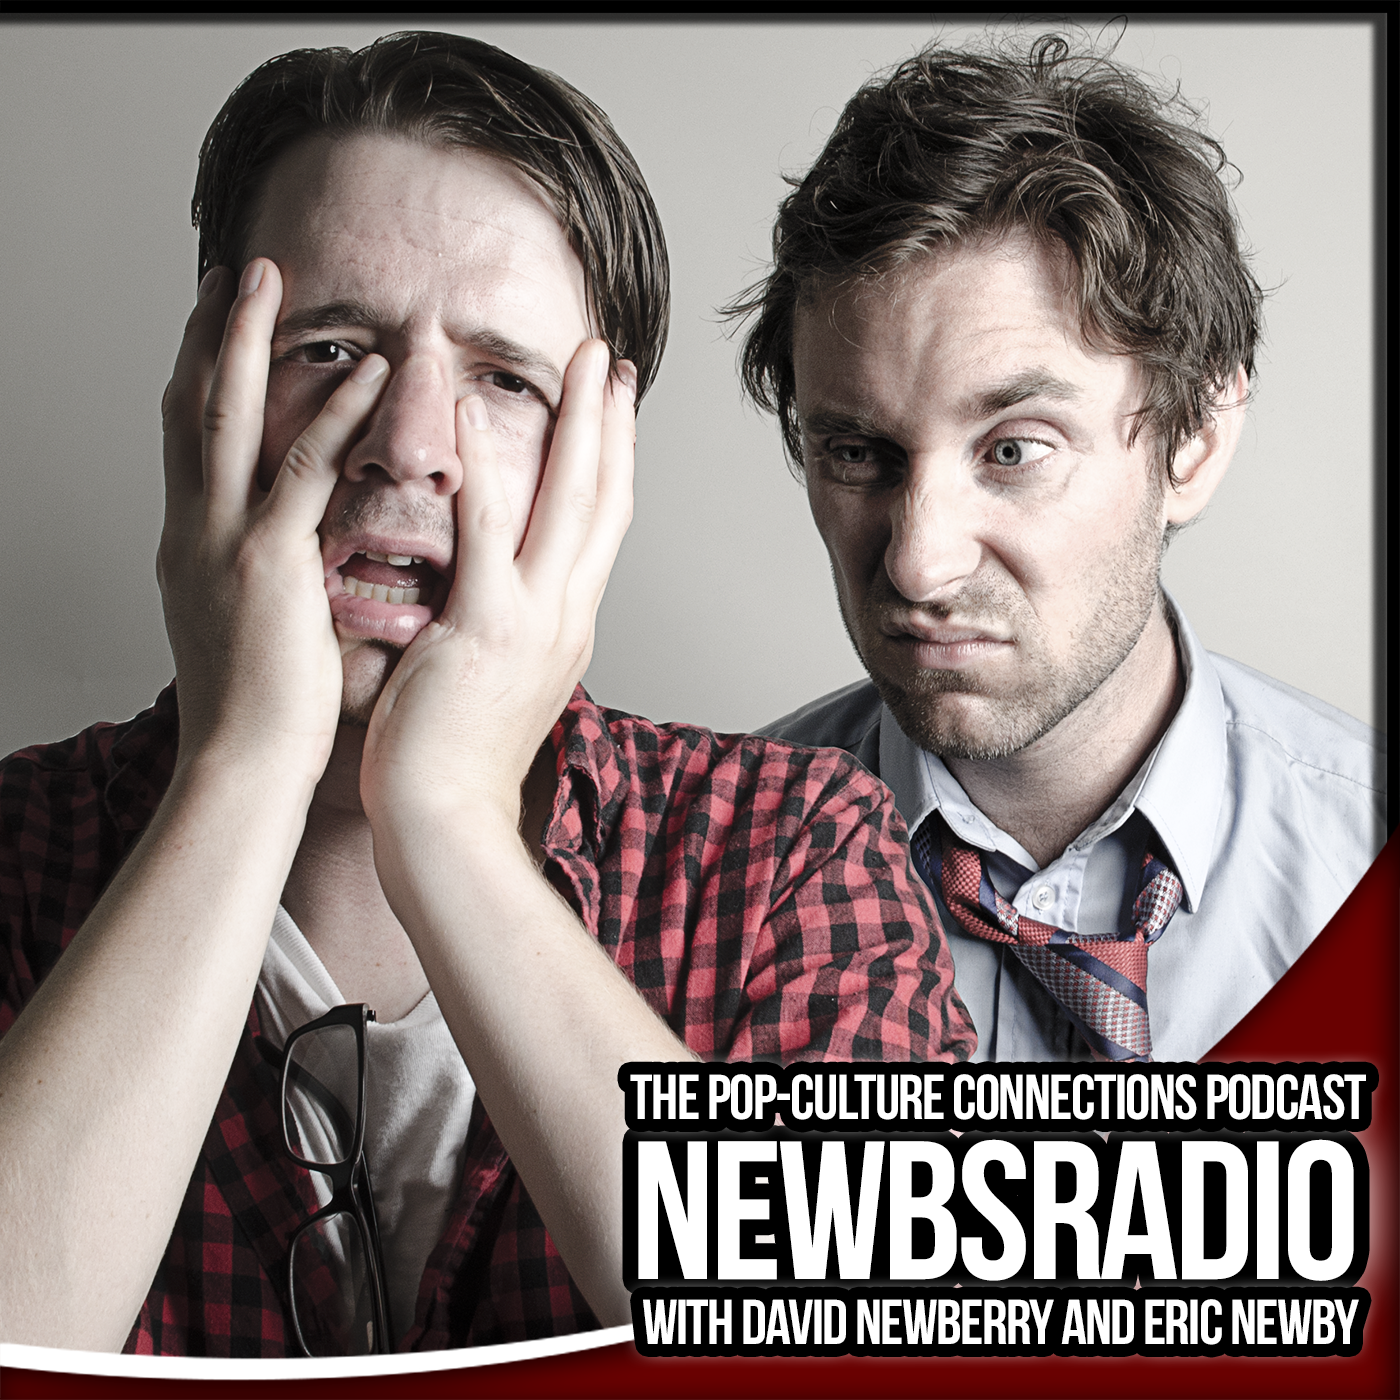 First promotional imagery for NewbsRadio with David Newberry and Eric Newby